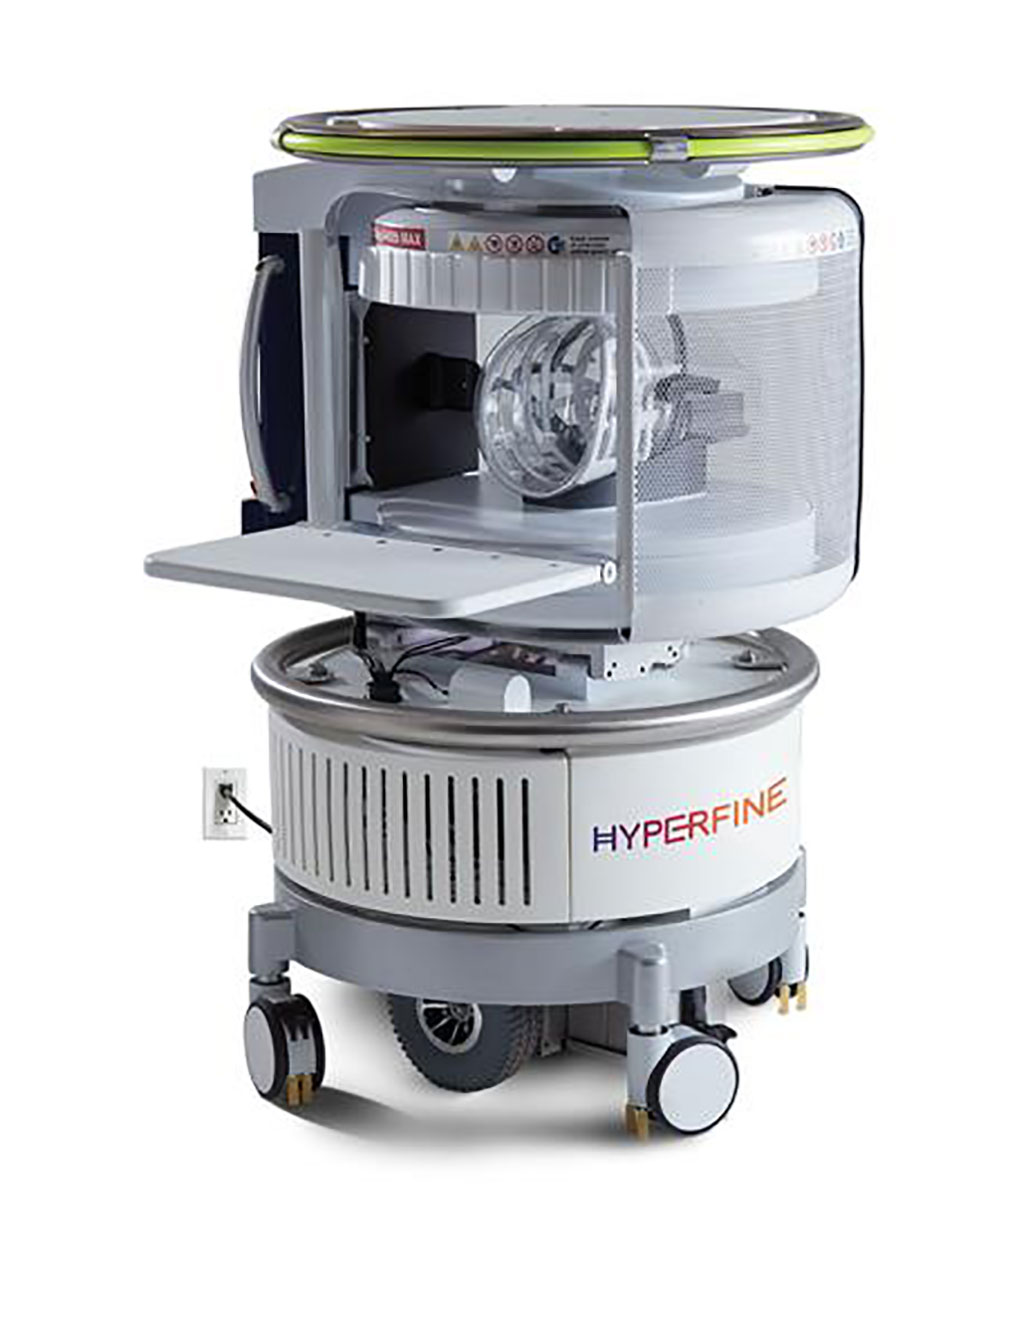 Image: Swoop Portable MR Imaging System (Photo courtesy of Hyperfine Research, Inc.)